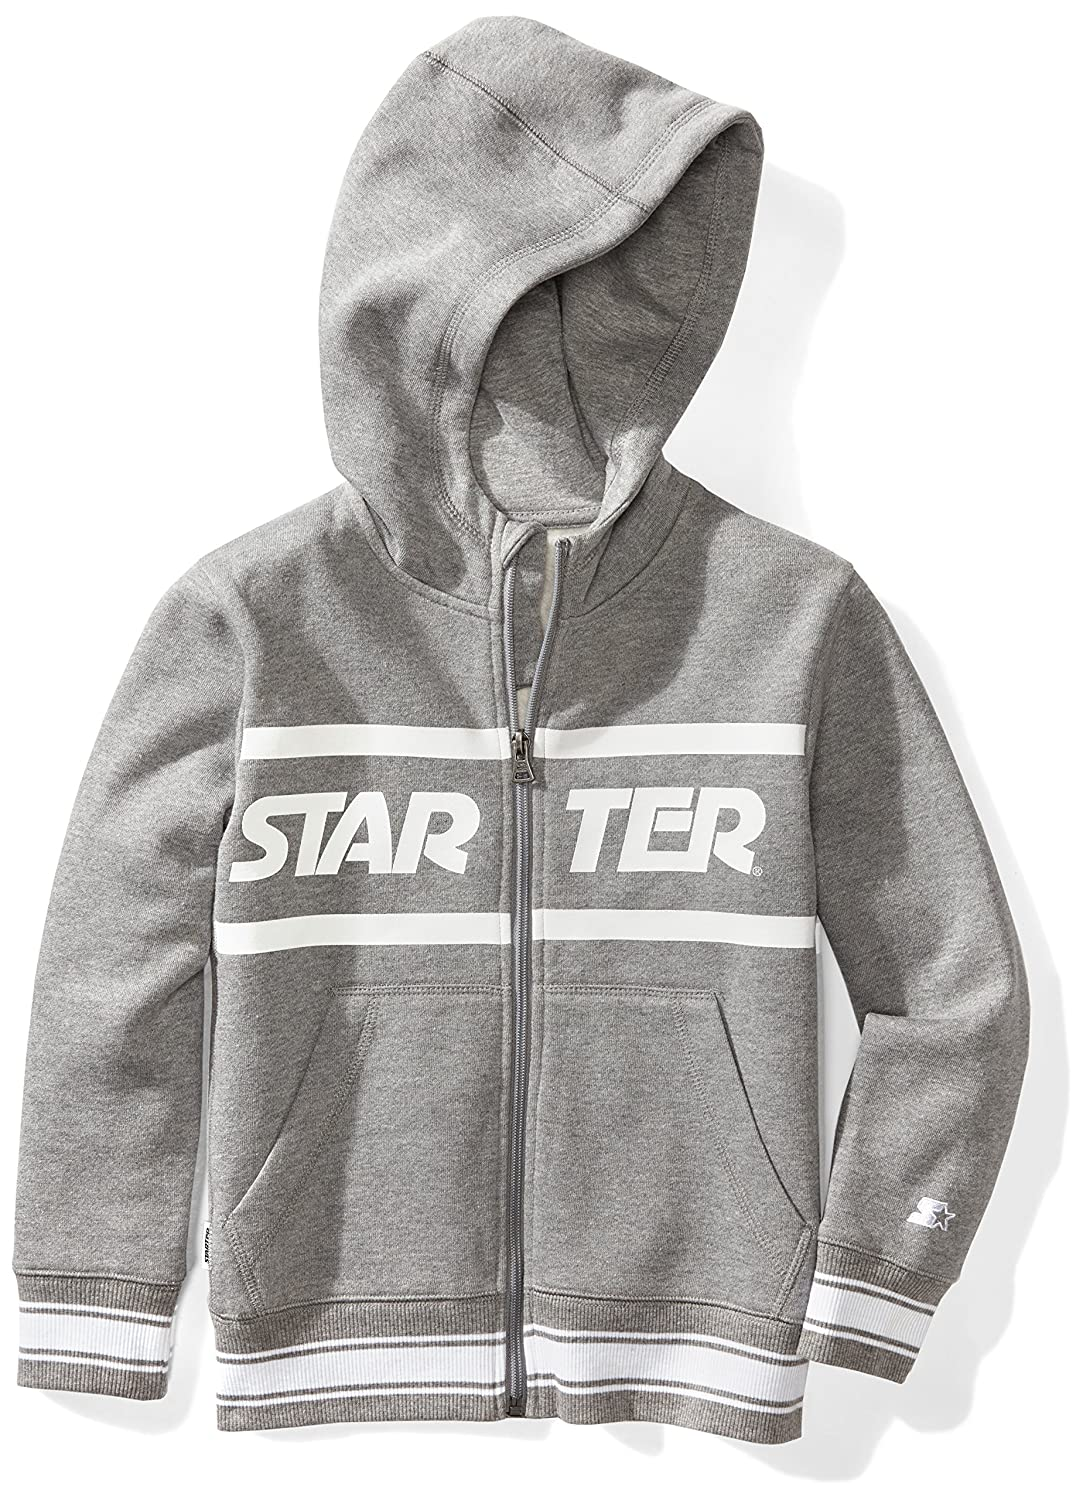 Starter Boys' Zip-Up Logo Hoodie, Amazon Exclusive S17FBT25